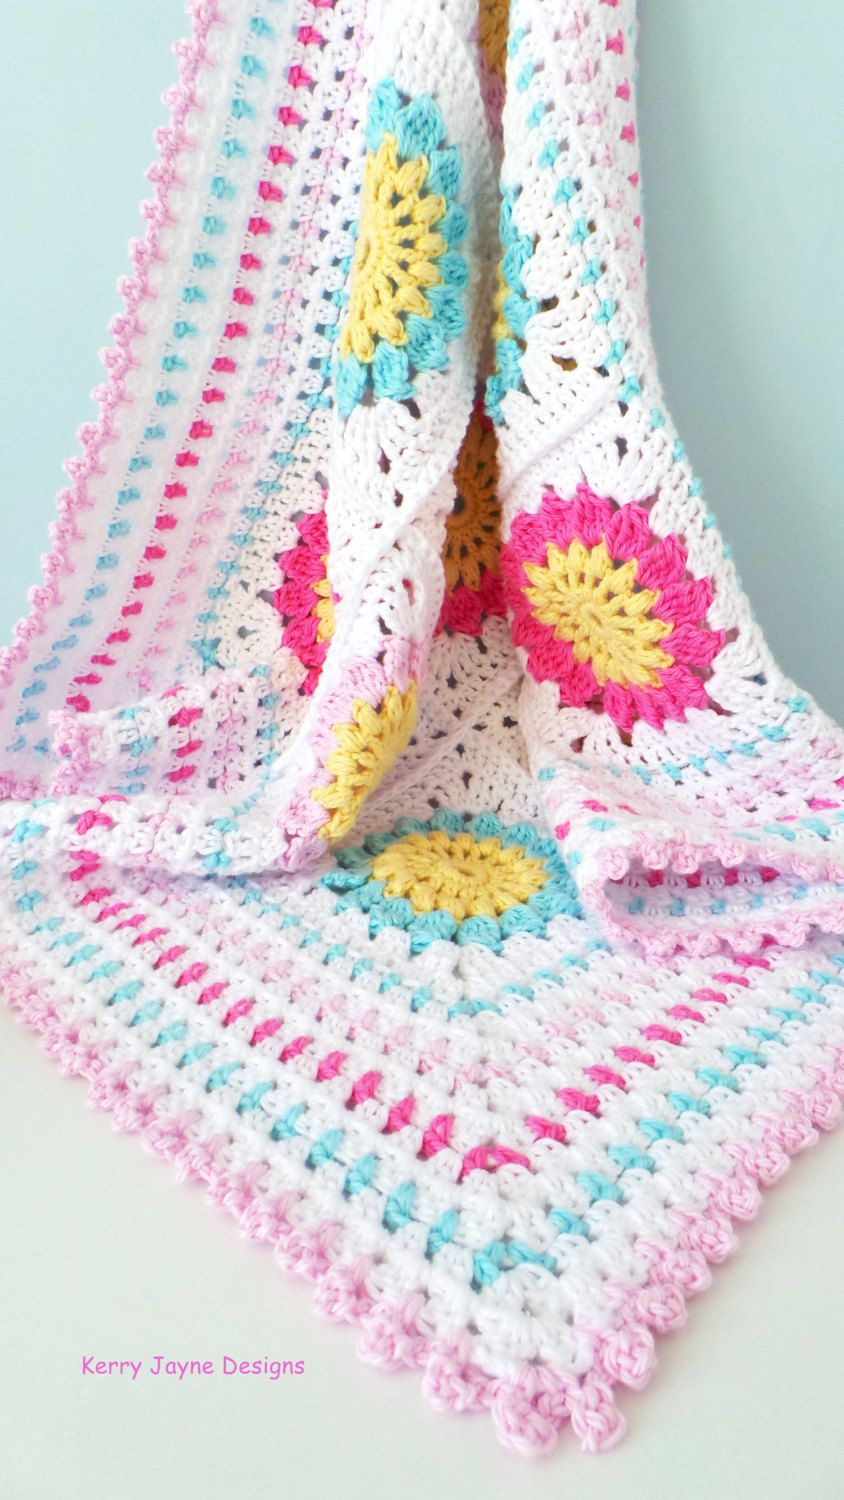 Granny square baby blanket pattern, Cotton yarn blanket pattern ...